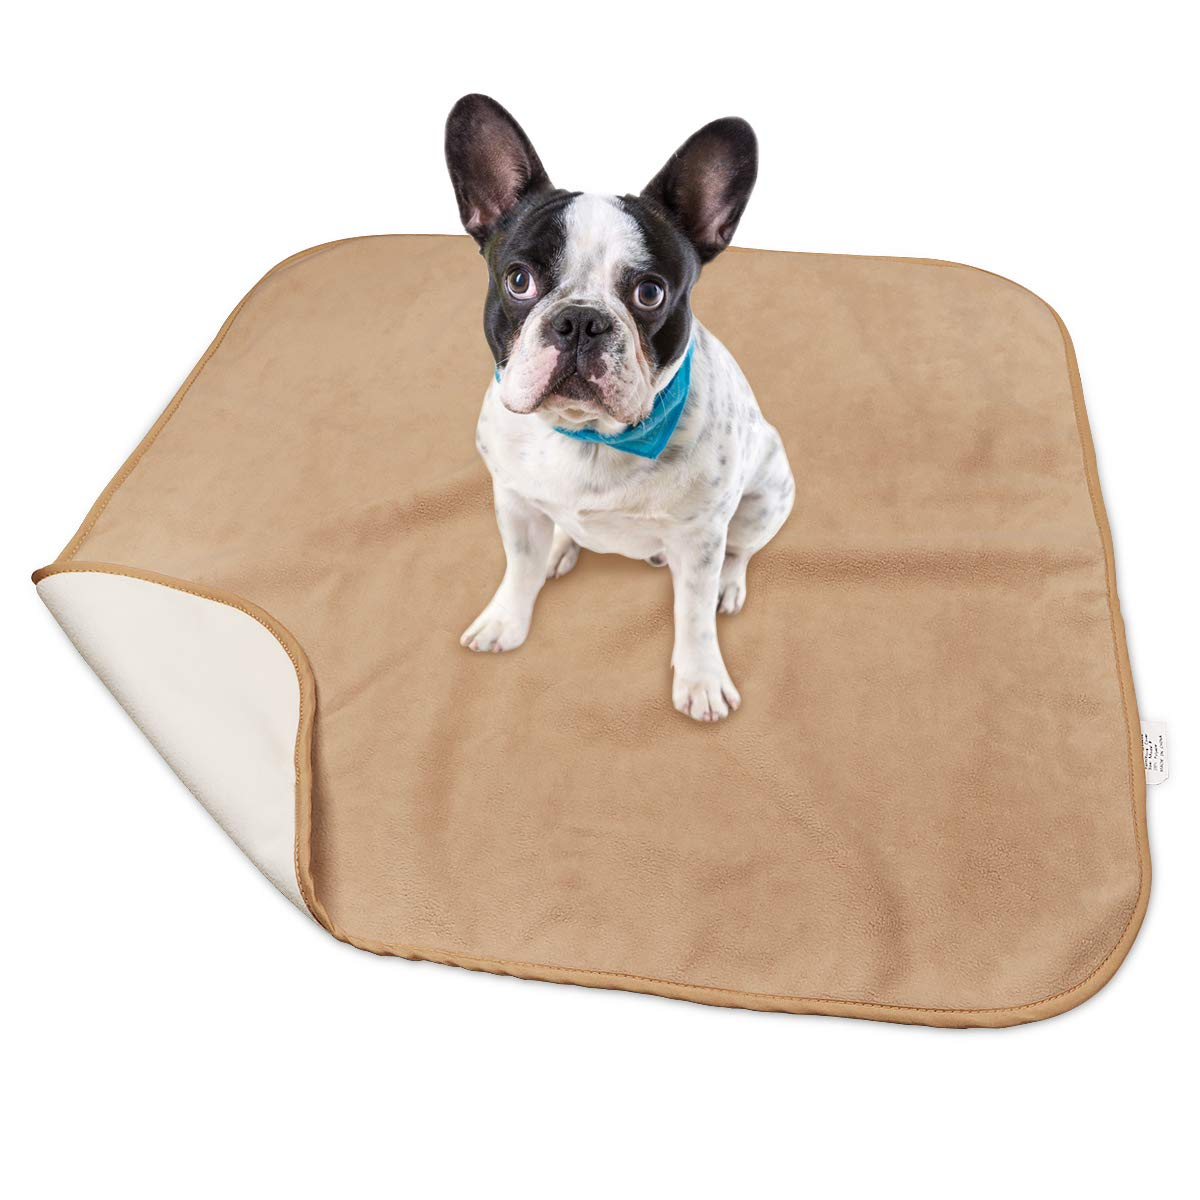 NEXTCOVER Waterproof Blanket-Pee Proof Pet Blankets Cover, Reversible Furniture Protector for Small Dogs Puppy Cat